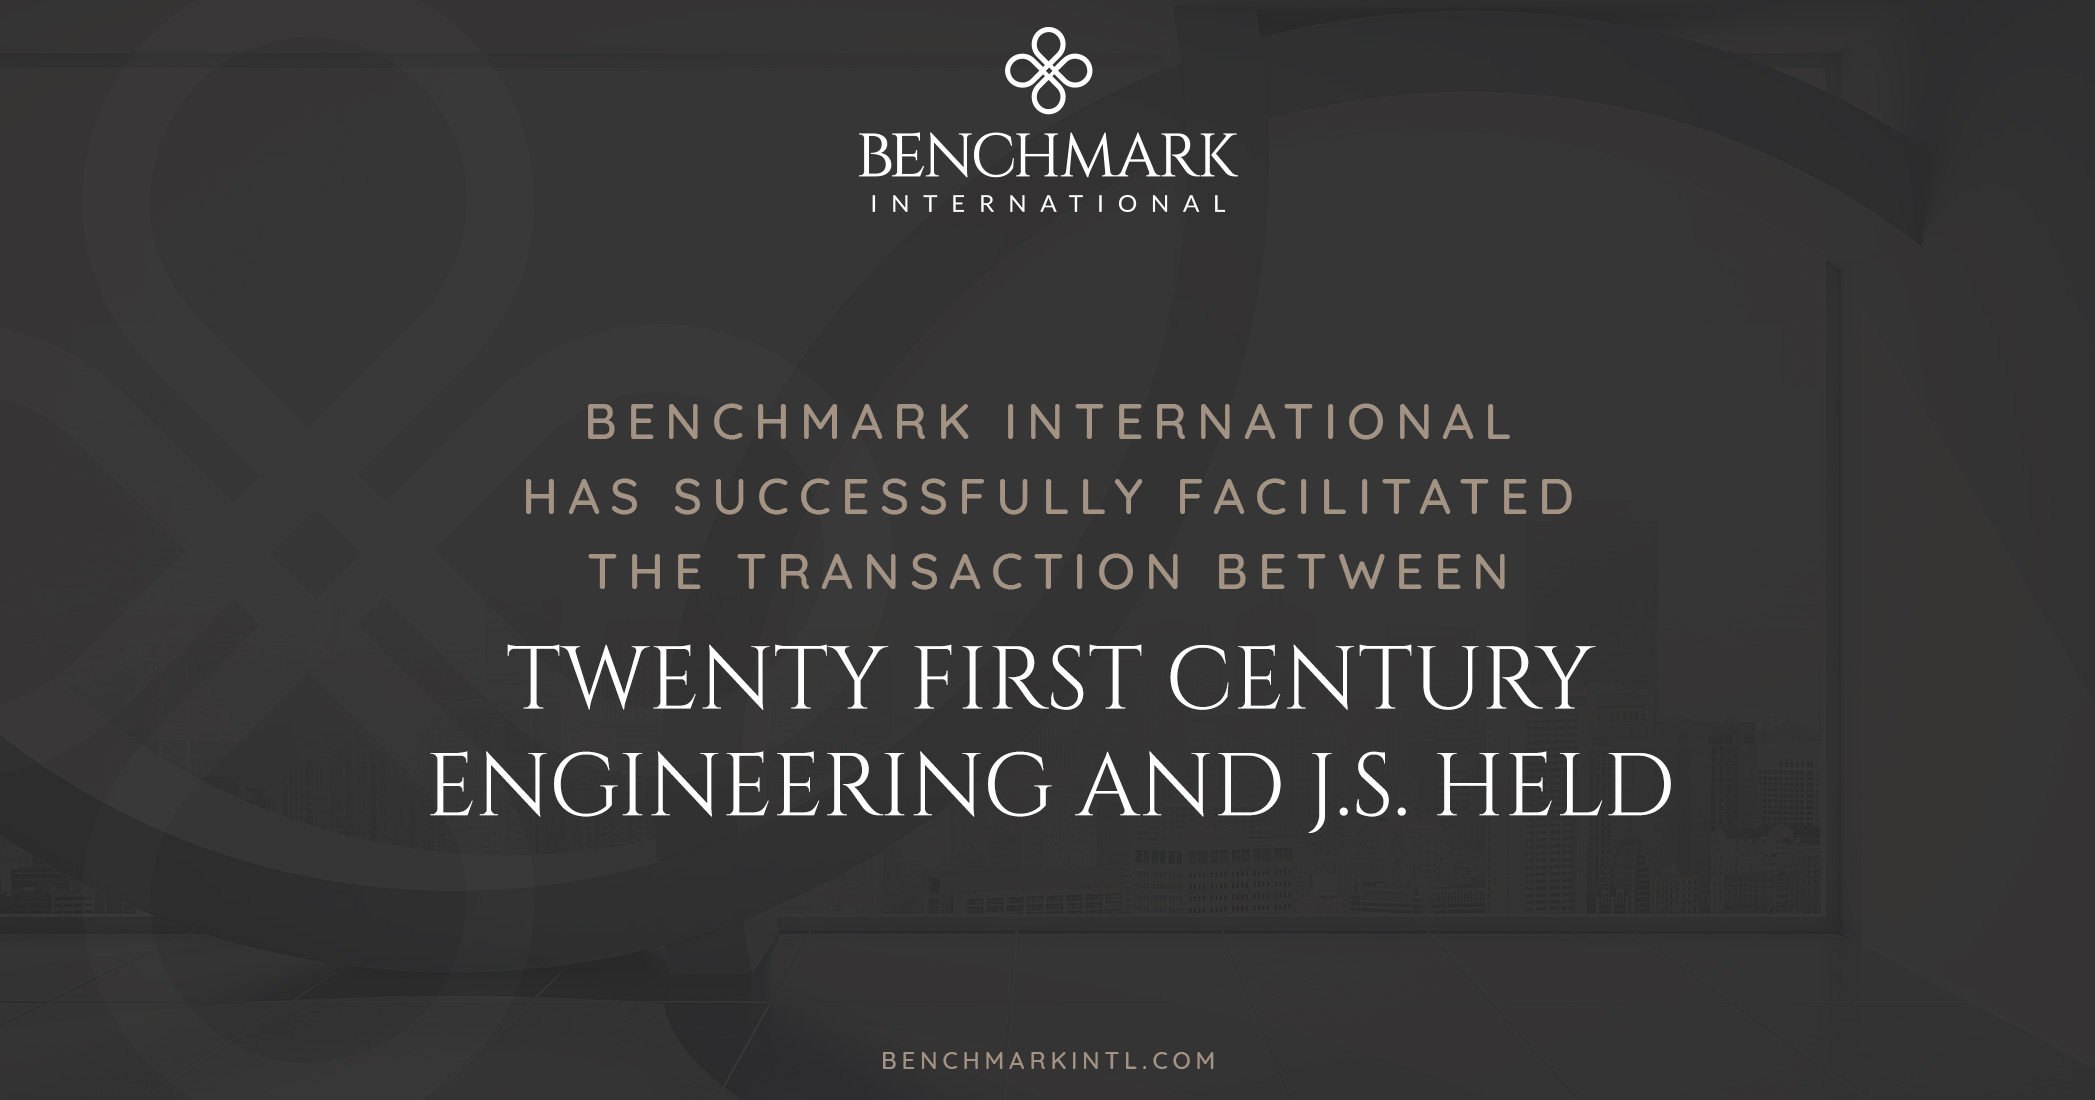 Benchmark International Successfully Facilitated the Transaction Between Twenty First Century Engineering and J.S. Held